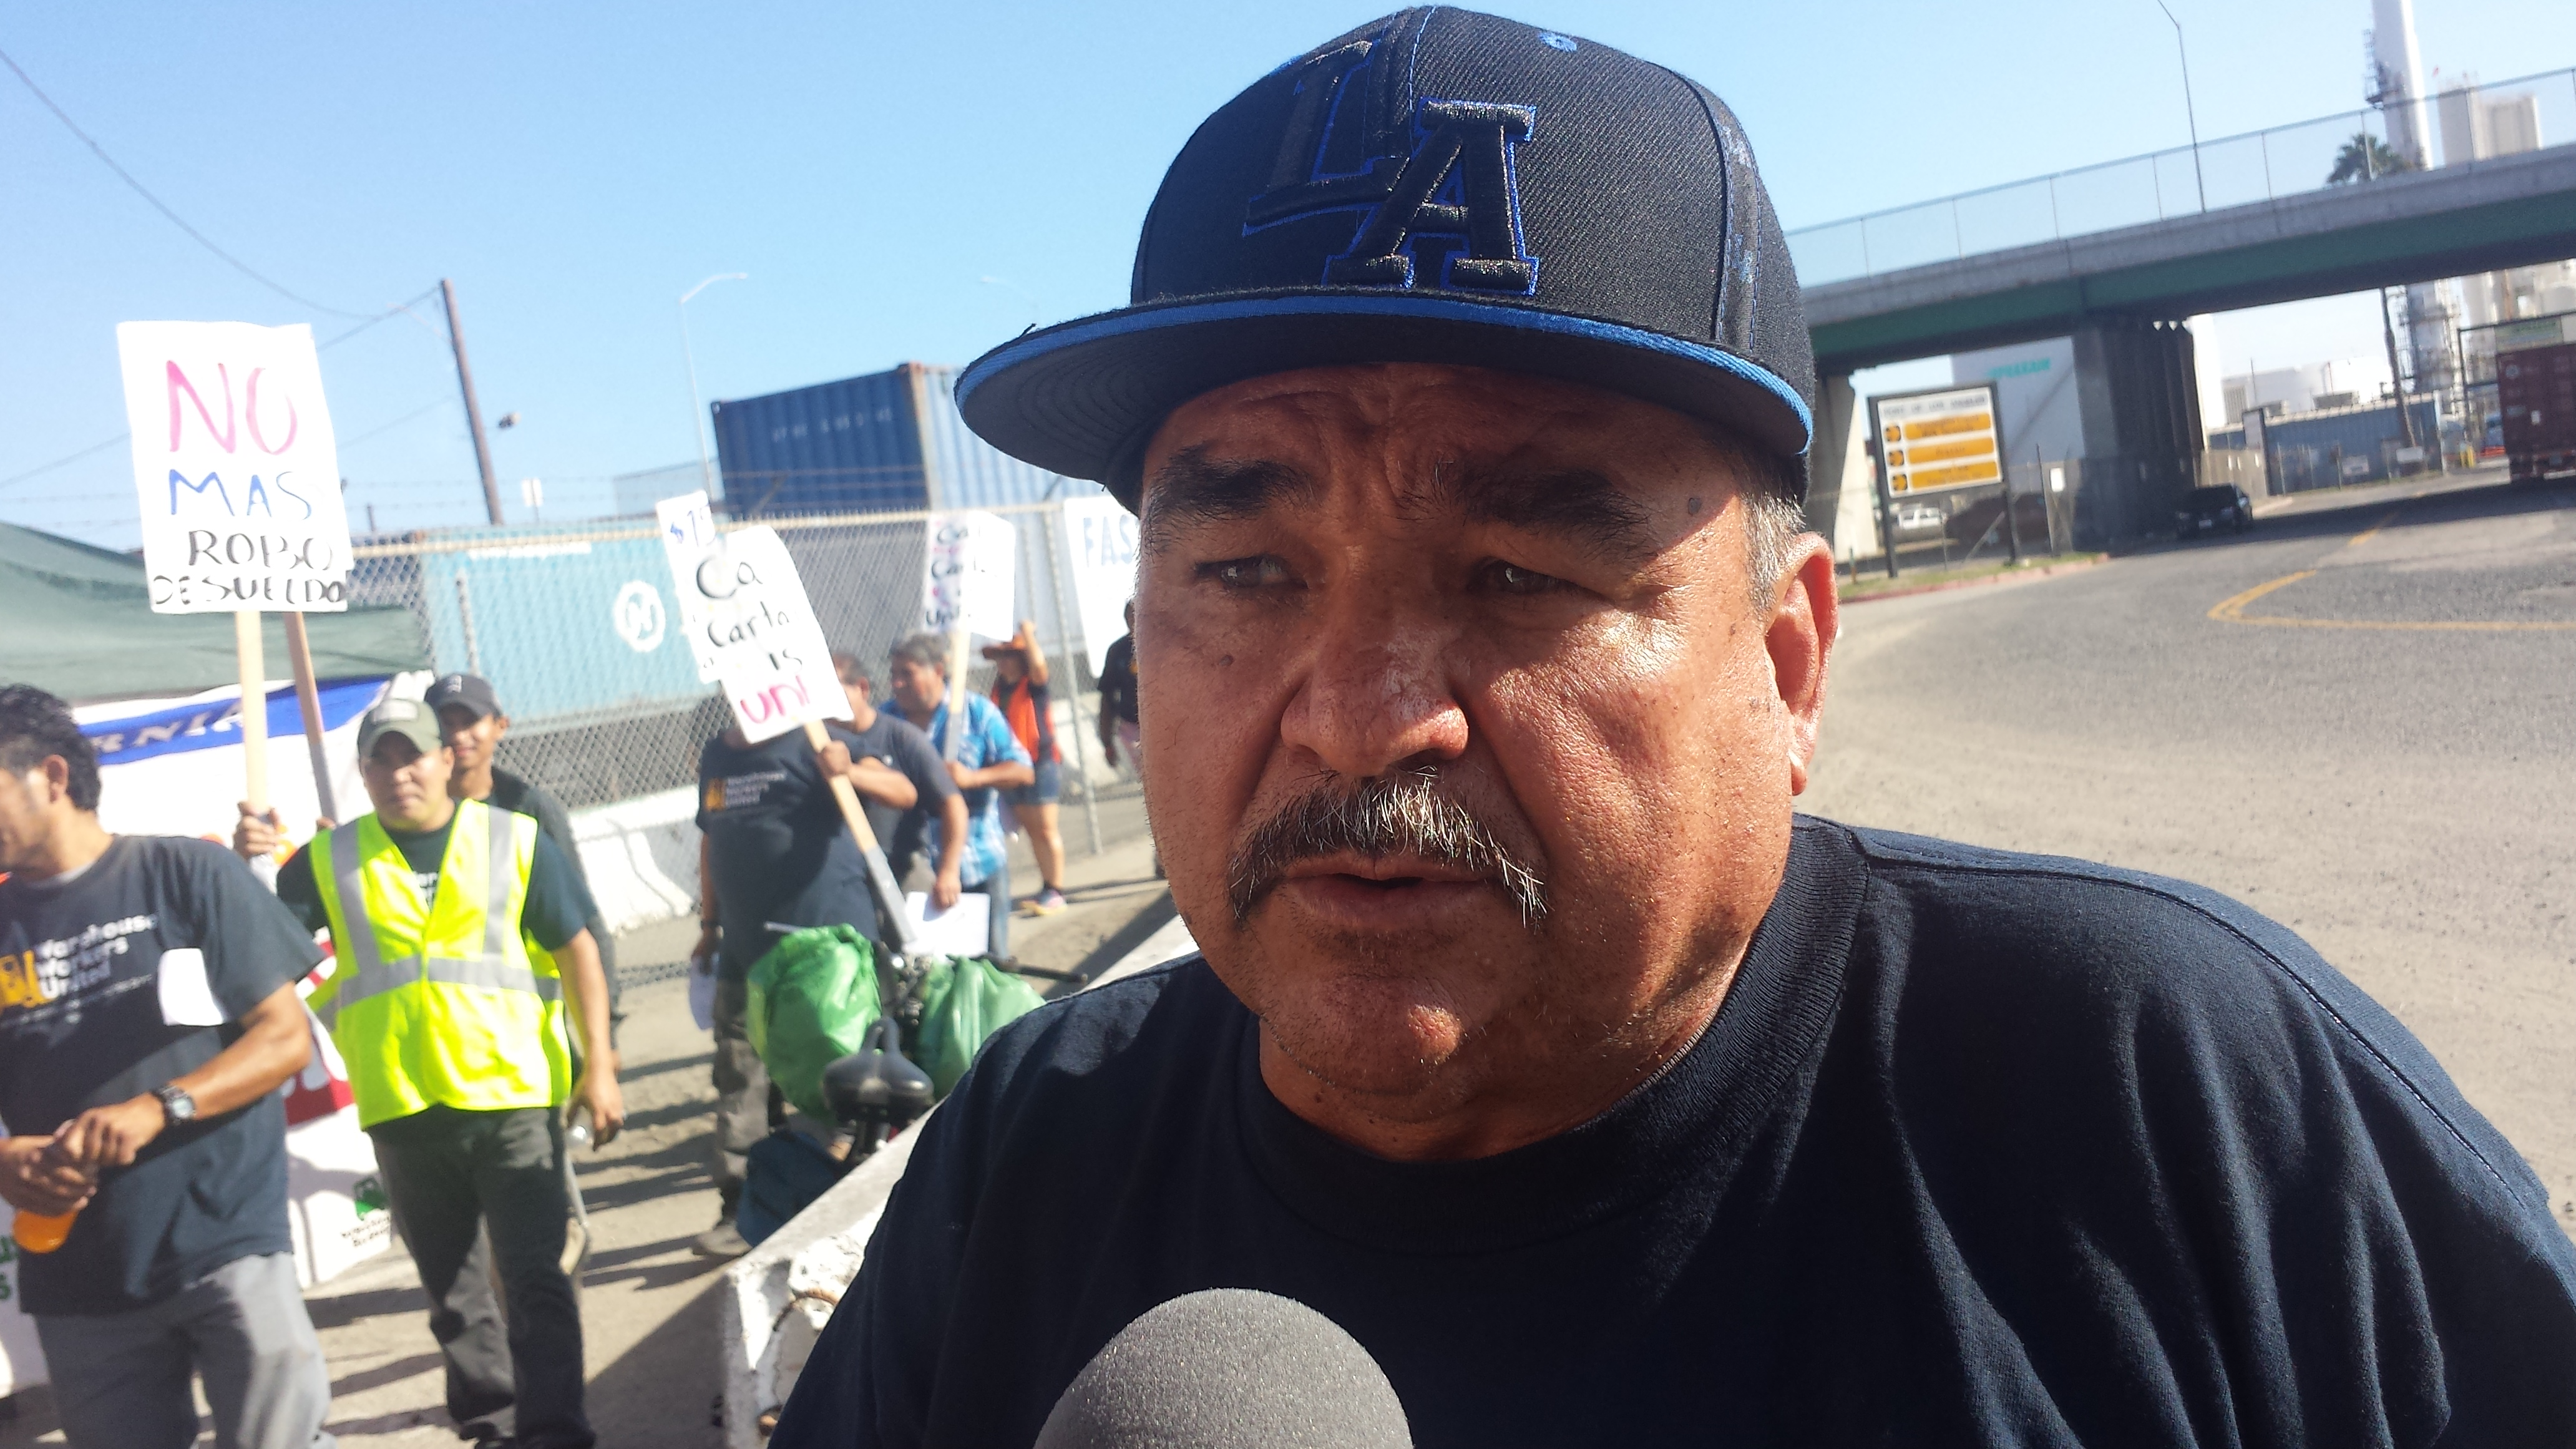 Rafel Quinteros says California Cartage Company owes him a lot of money. Photo: Rubén Tapia.